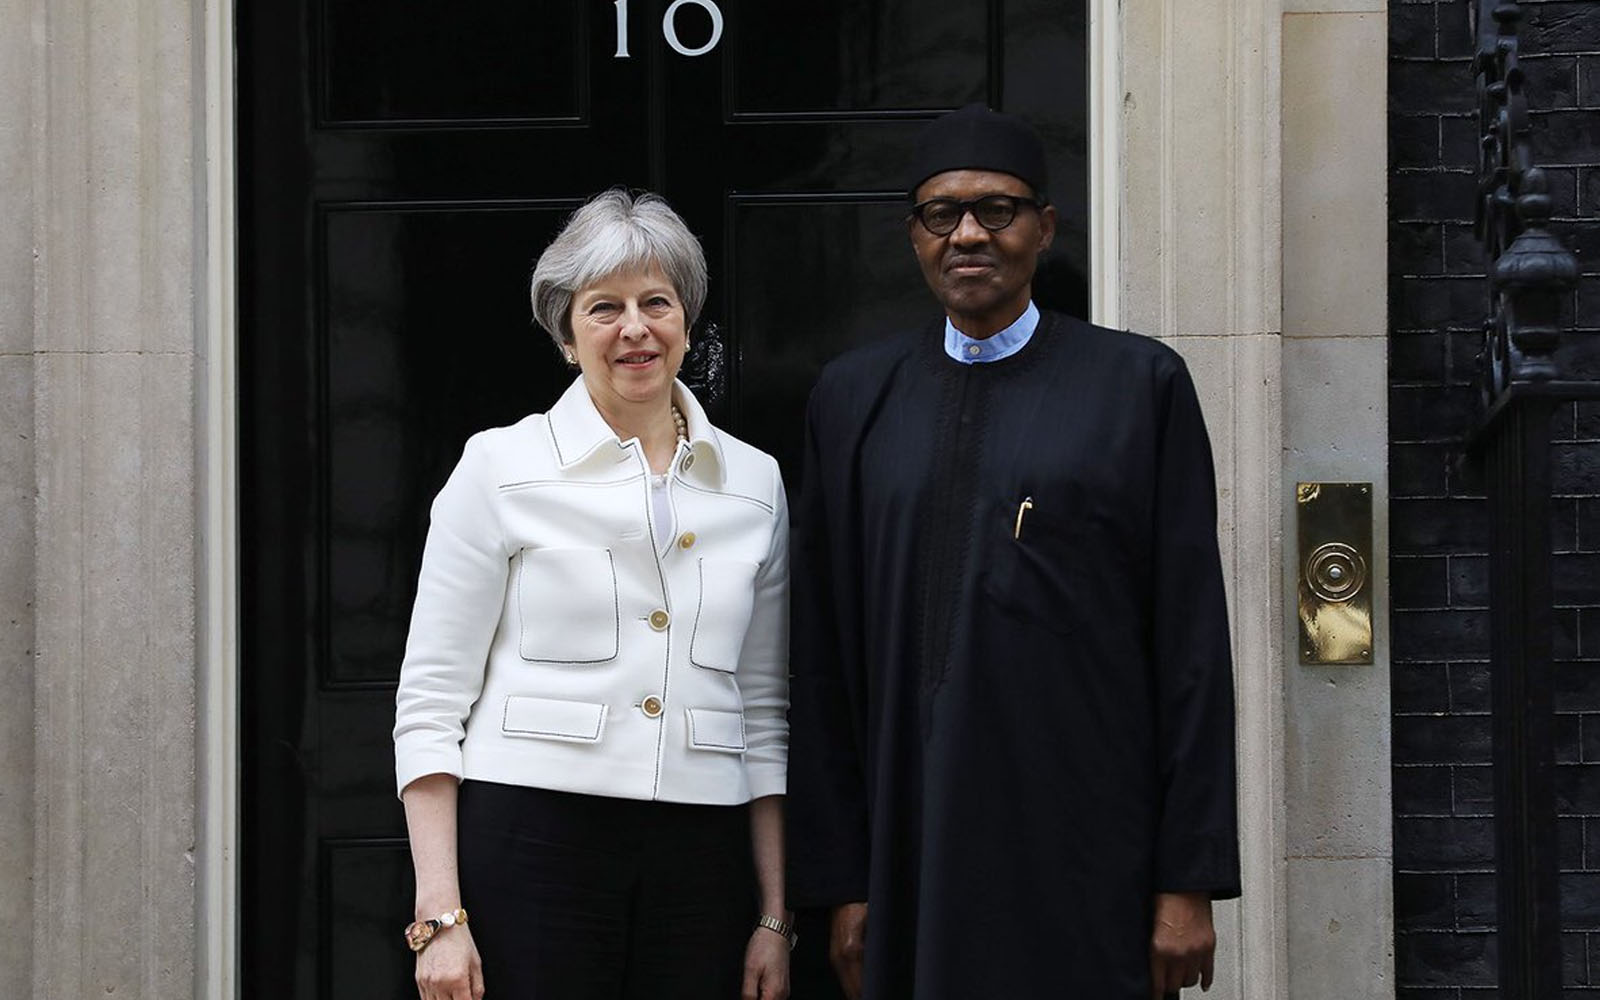 Theresa May's got moves: Reactions to Africa visit